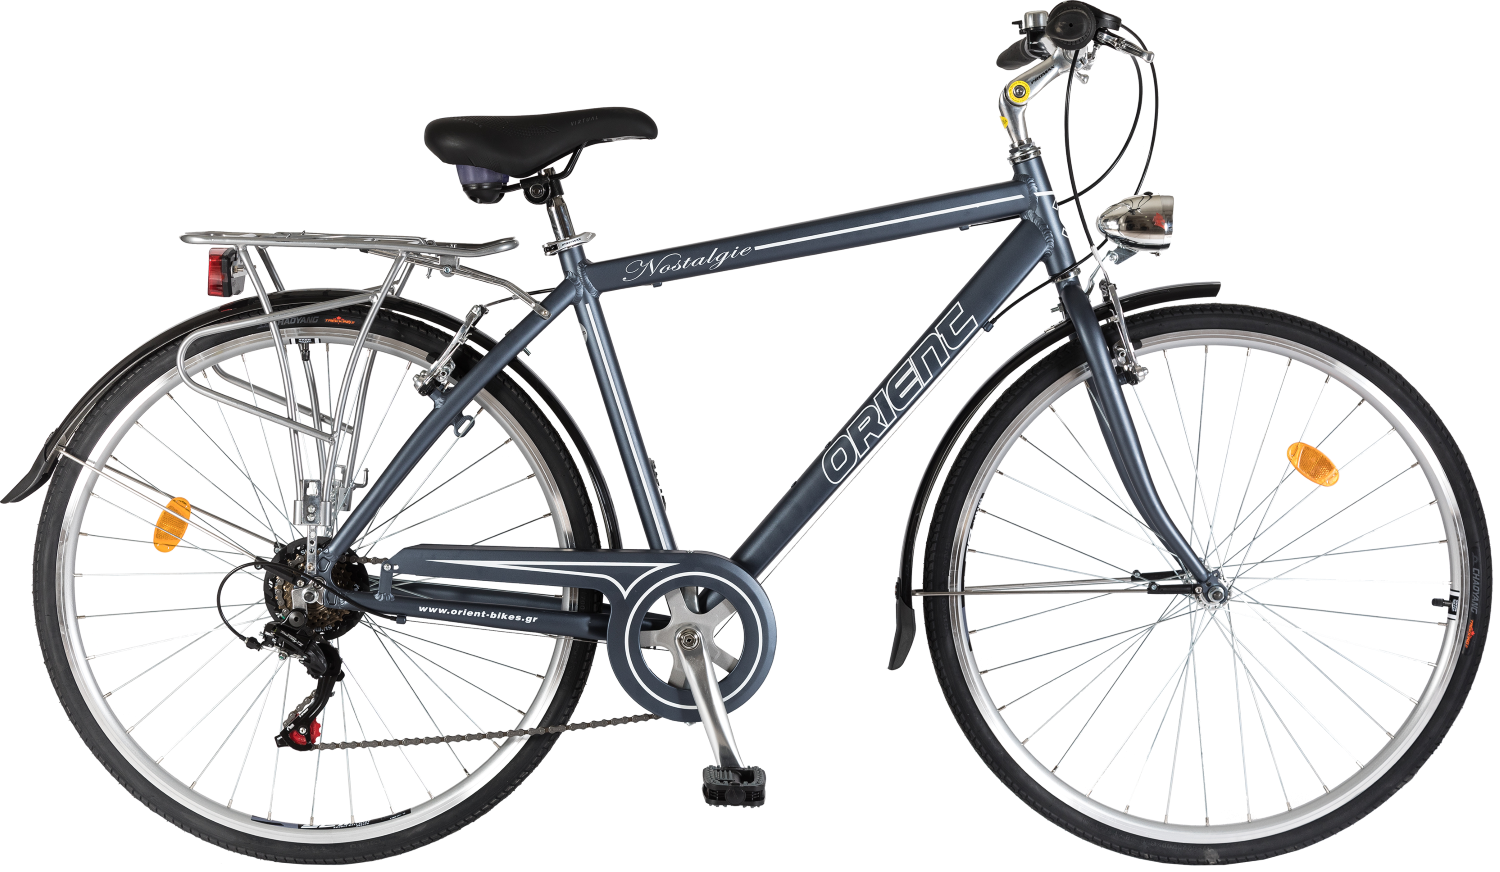 NOSTALGIE 28″ man 6sp. bike image